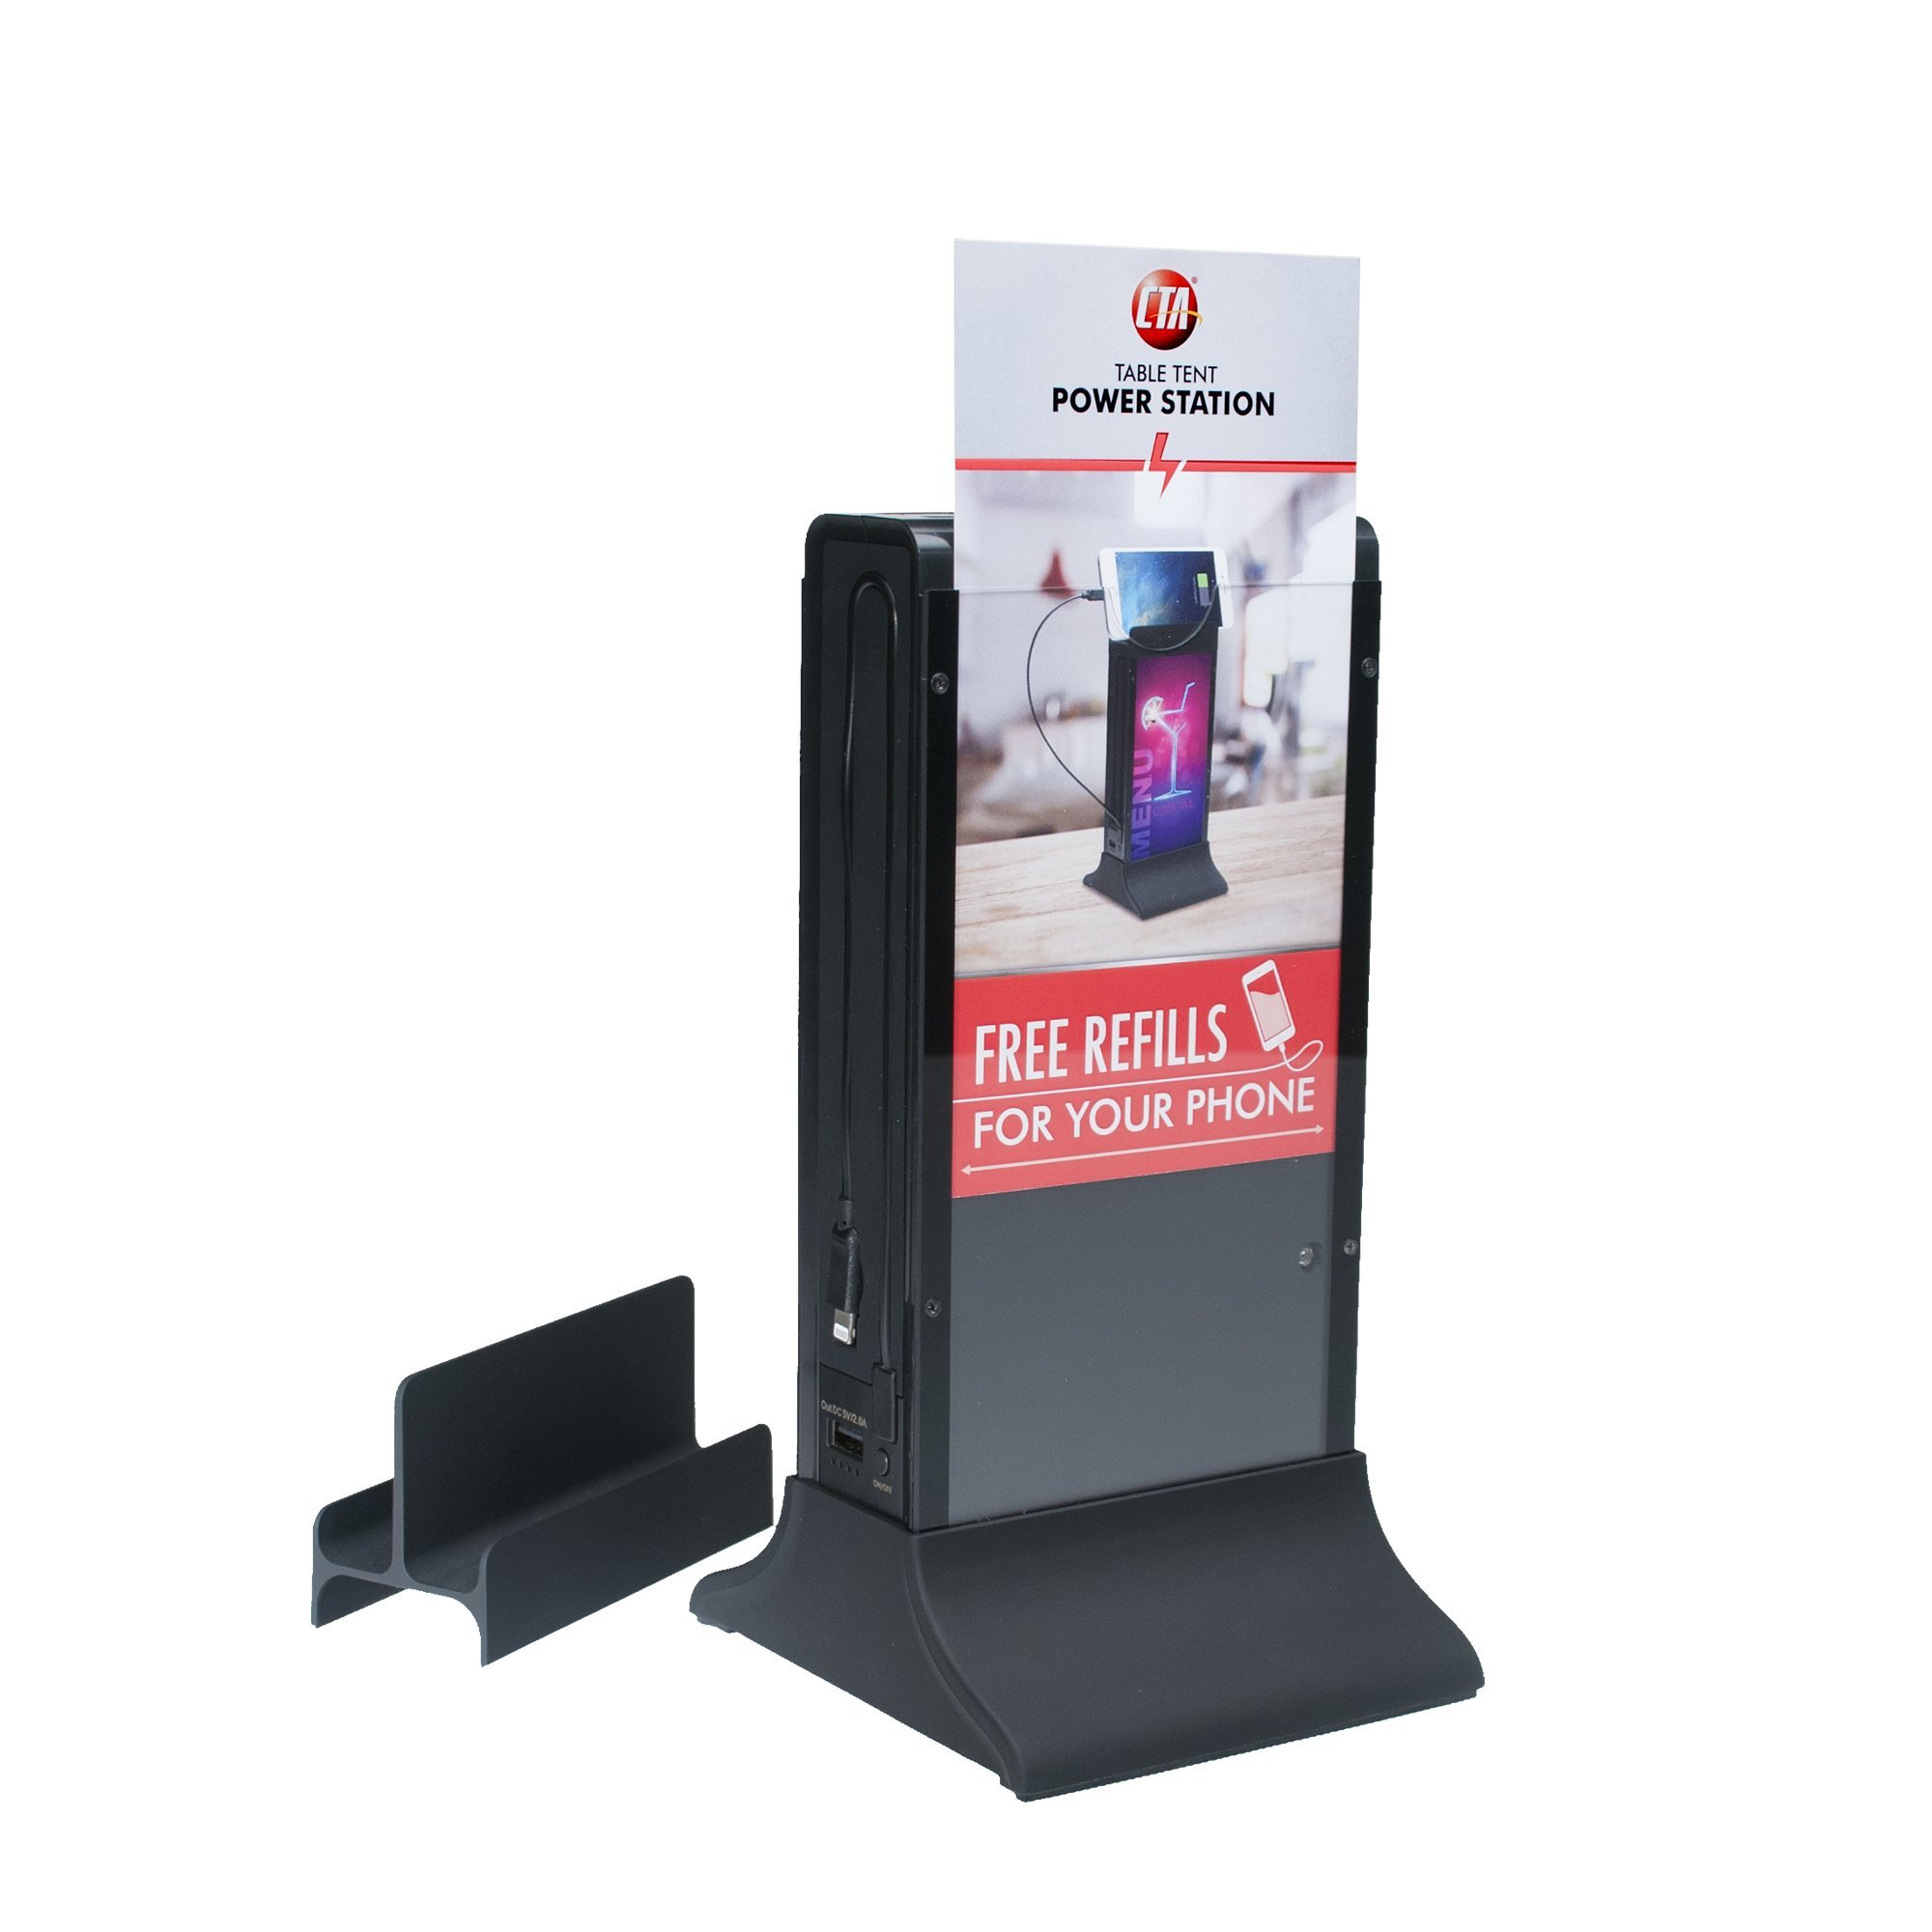 CTA Digital Table Tent Power Station 20,800 mAh for Bars/Restaurants by CTA Digital (Image #8)